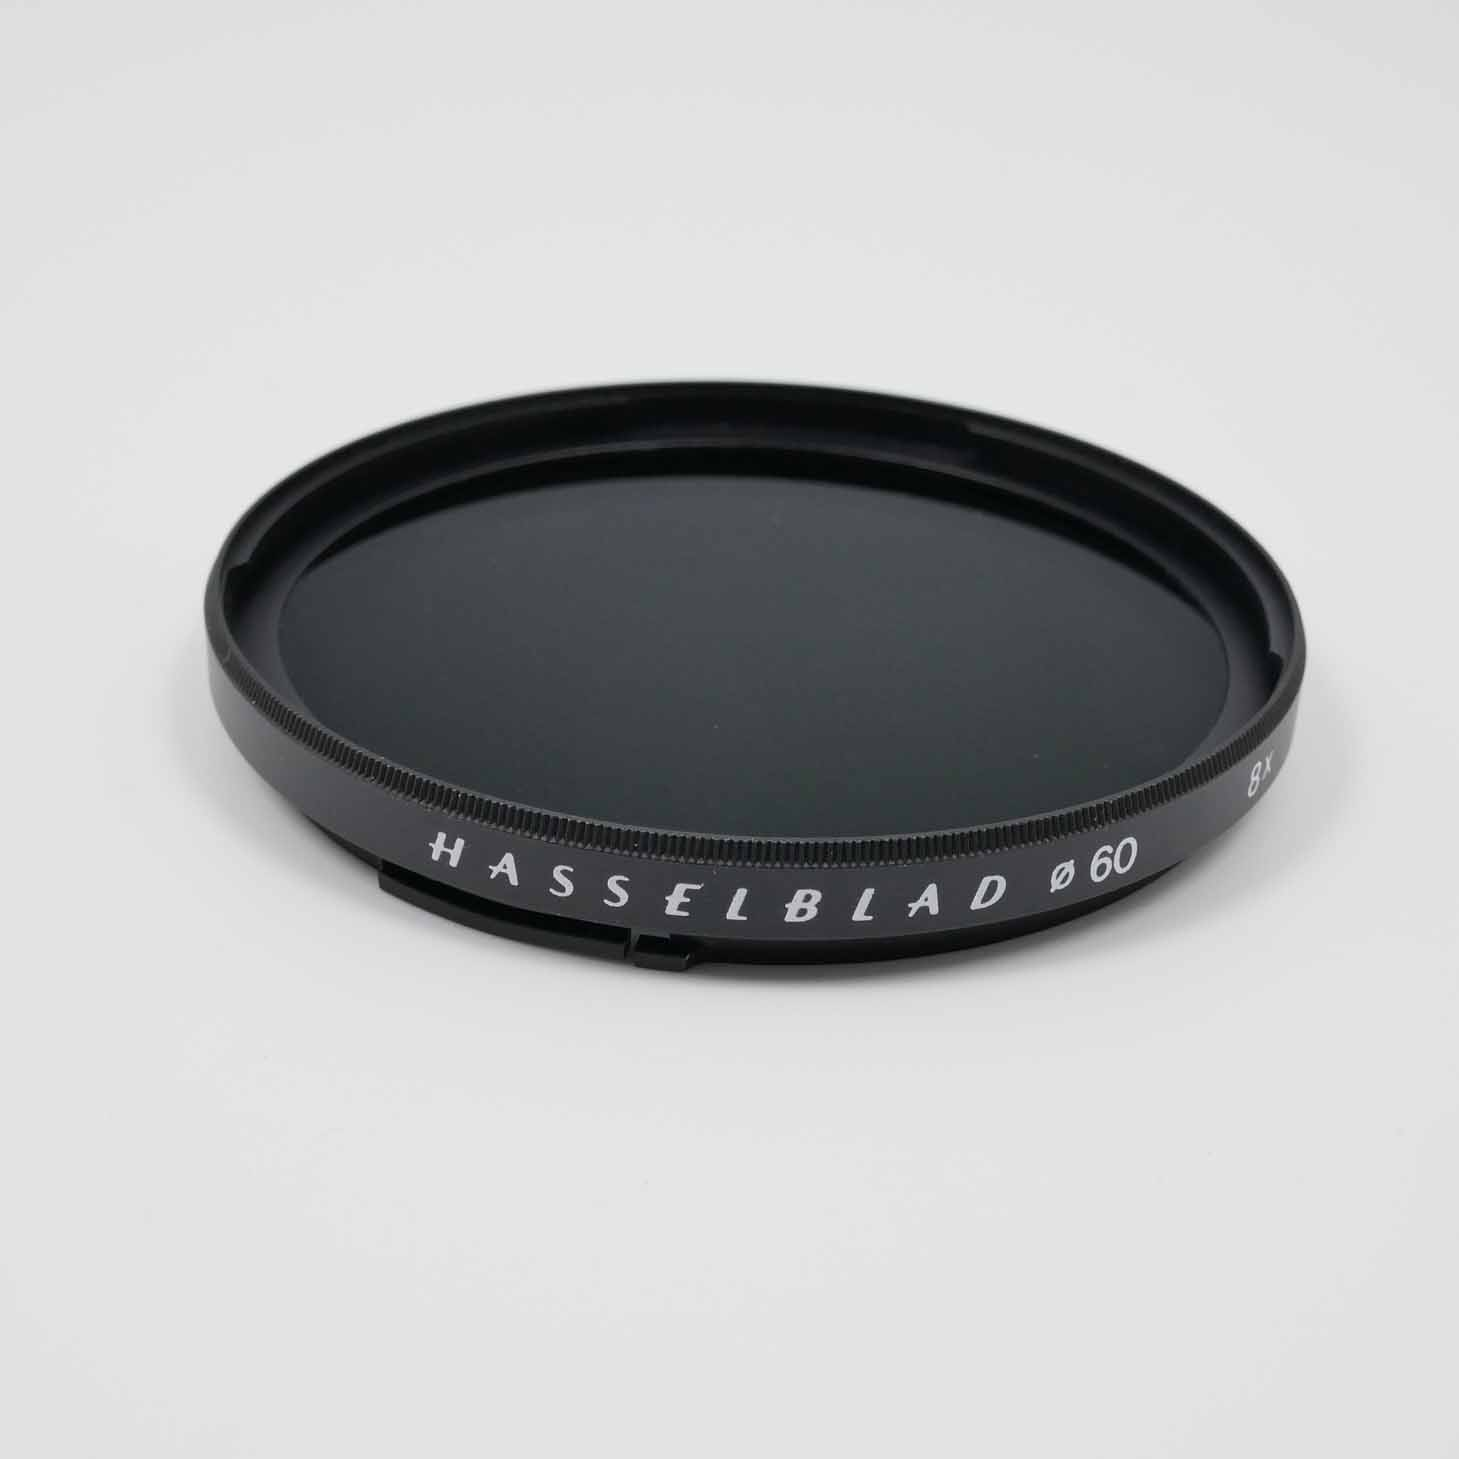 clean-cameras-photo-Hasselblad-Graufilter-07